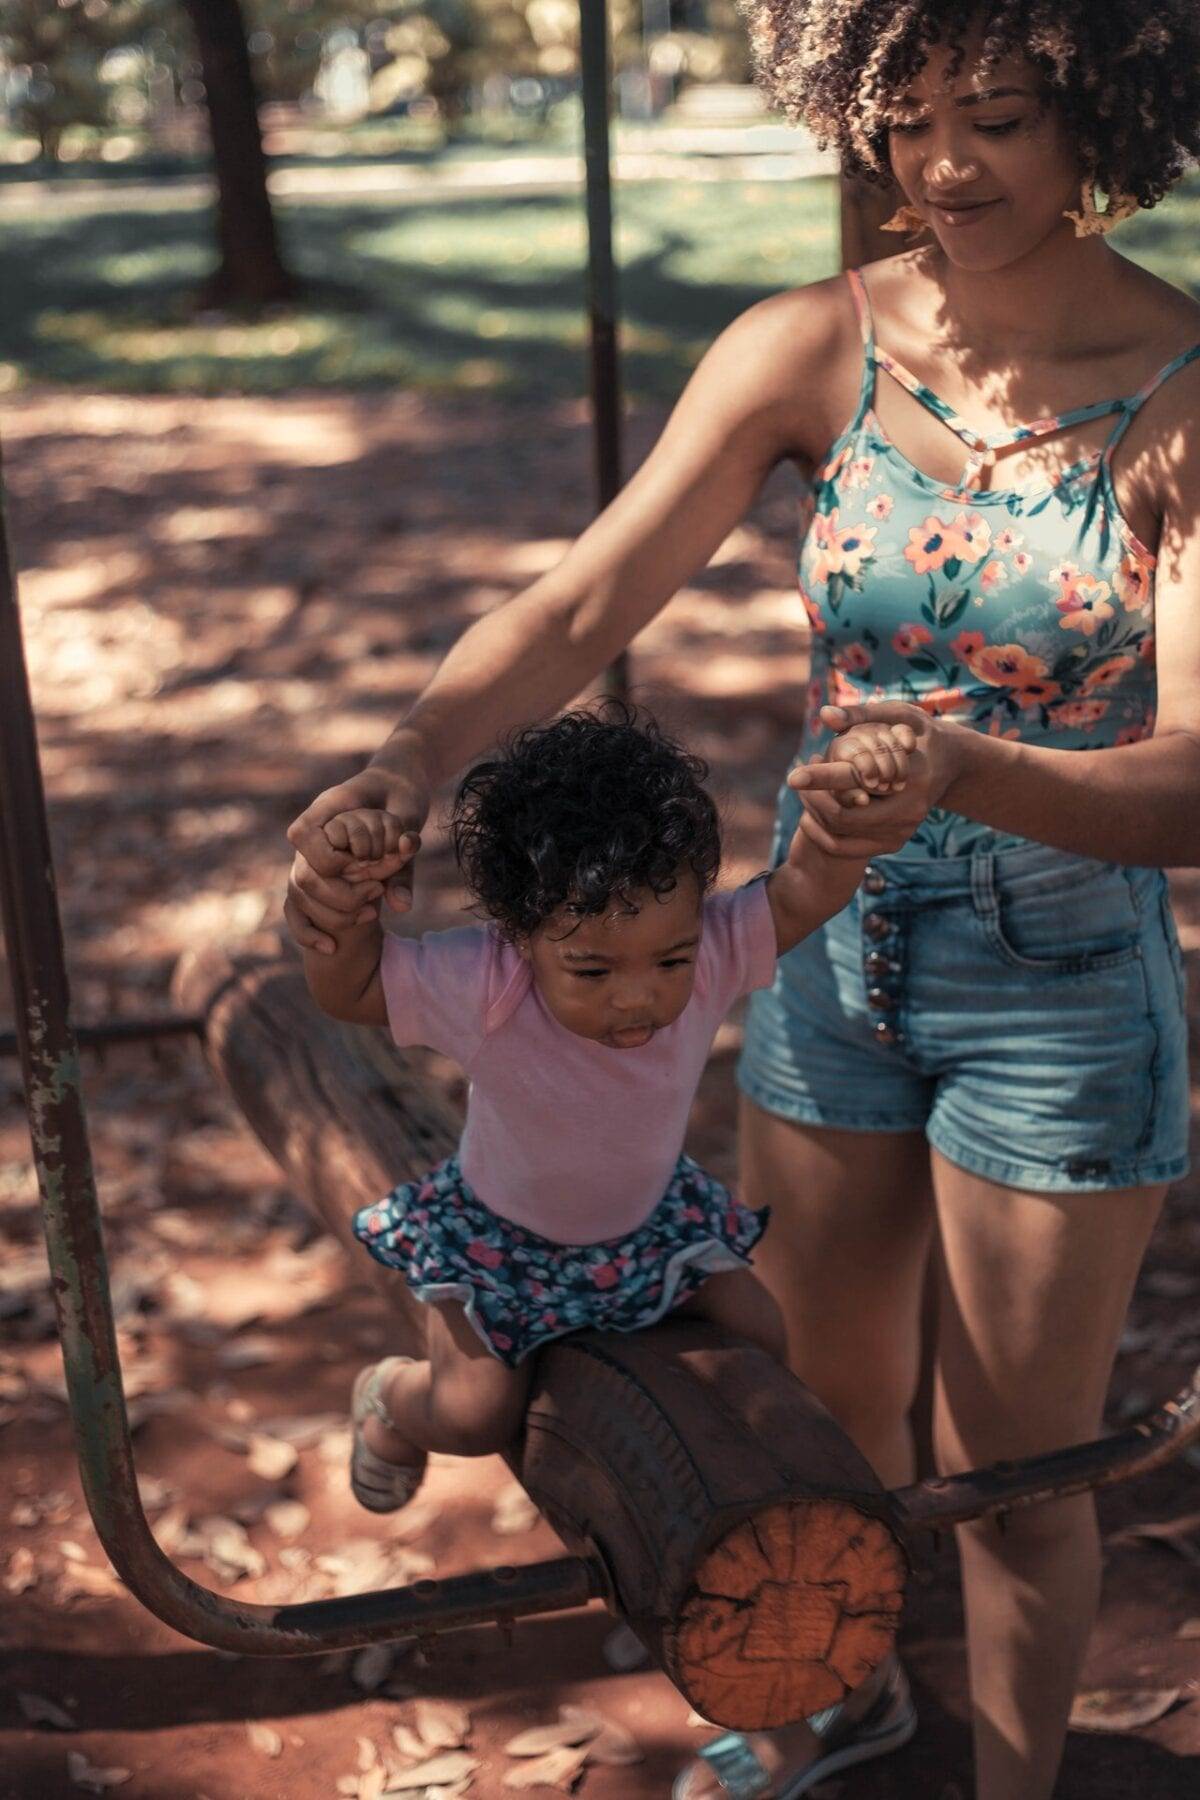 woman playing with child